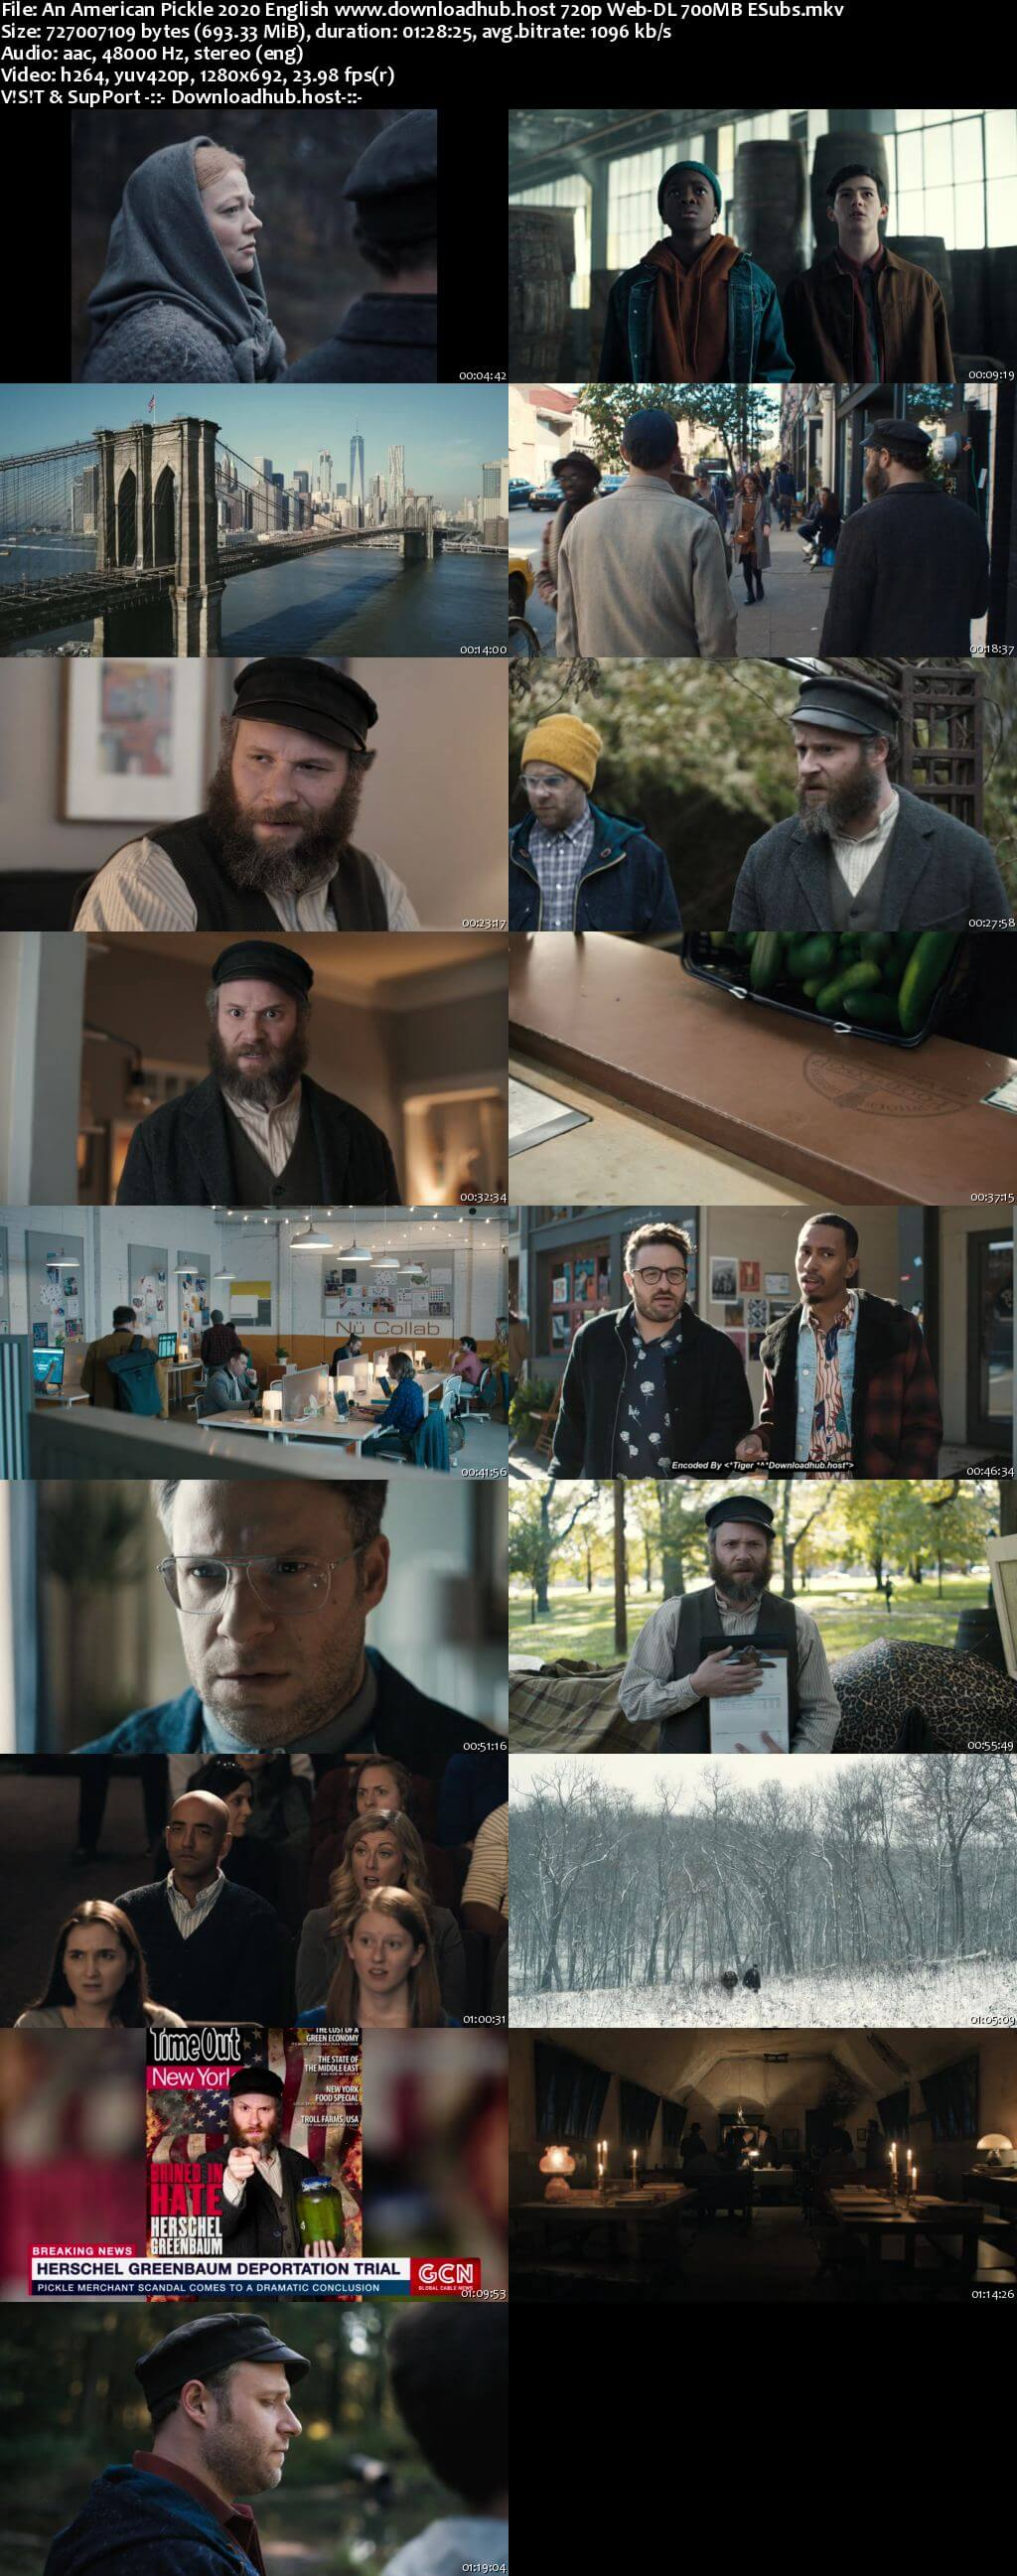 An American Pickle 2020 English 720p Web-DL 700MB ESubs